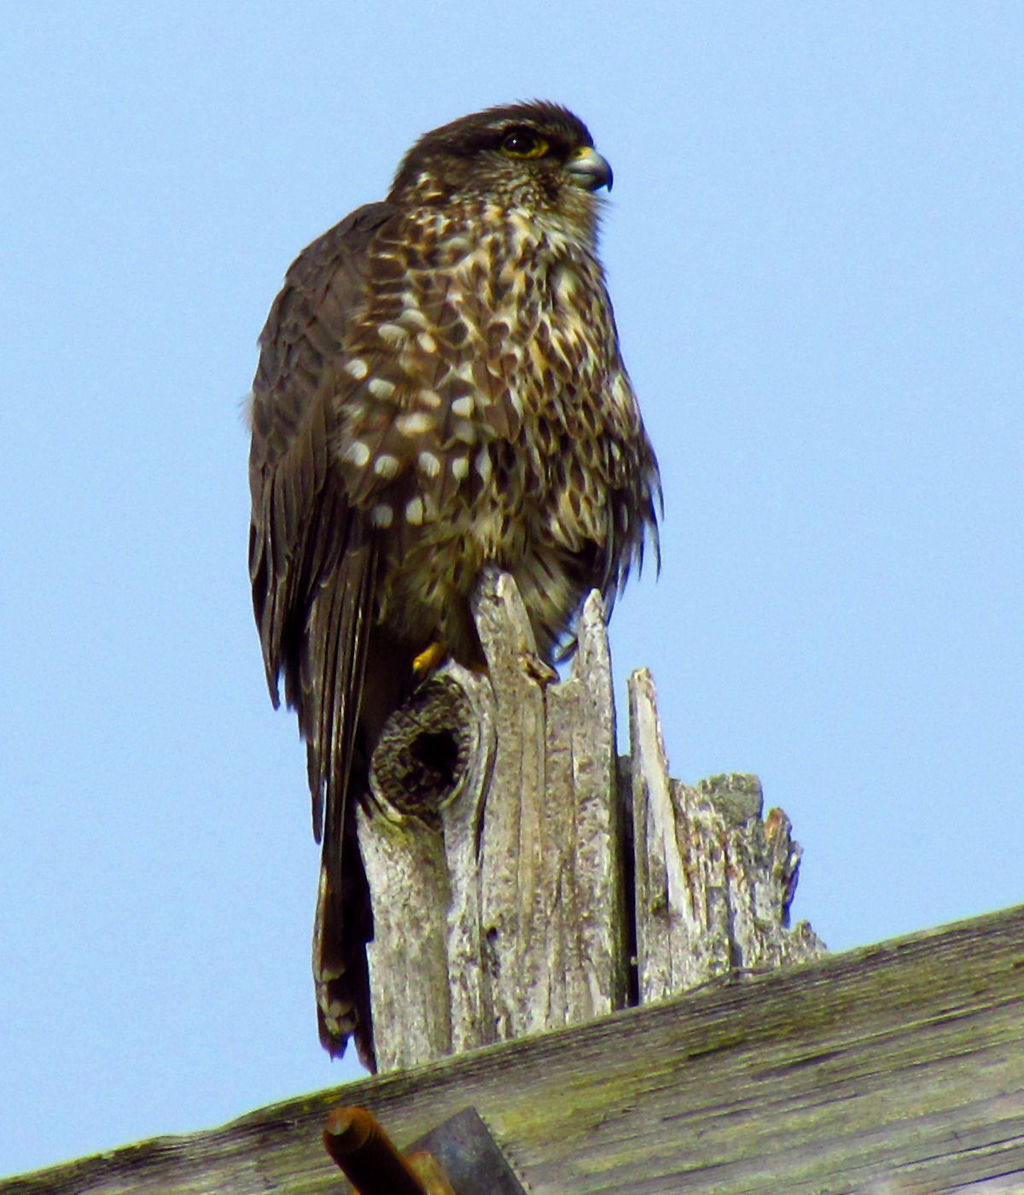 Image of juvenile merlin (Falco columbarius) provided courtesy of:  D. Gordon E.Robertson .  Note: This file is licensed under the  Creative Commons   Attribution-Share Alike 3.0 Unported  license.